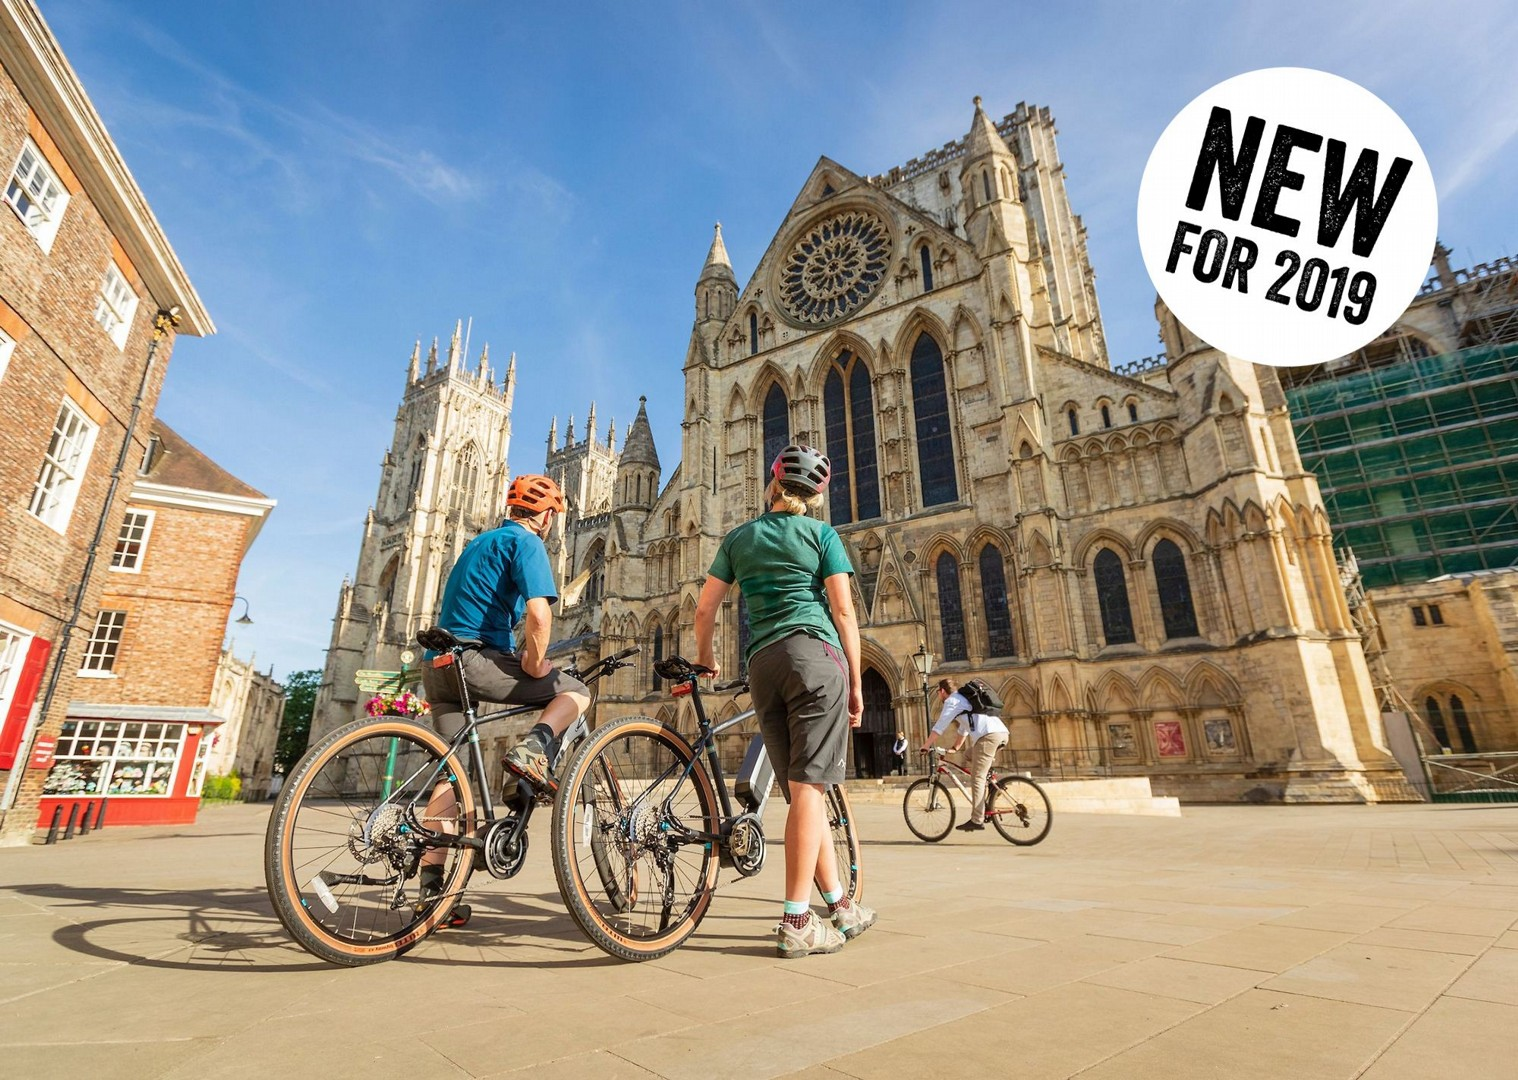 york-minster-self-guided-cycling-holiday.jpg - UK - Way of the Roses 5 Days Cycling - Self-Guided Leisure Cycling Holiday - Leisure Cycling